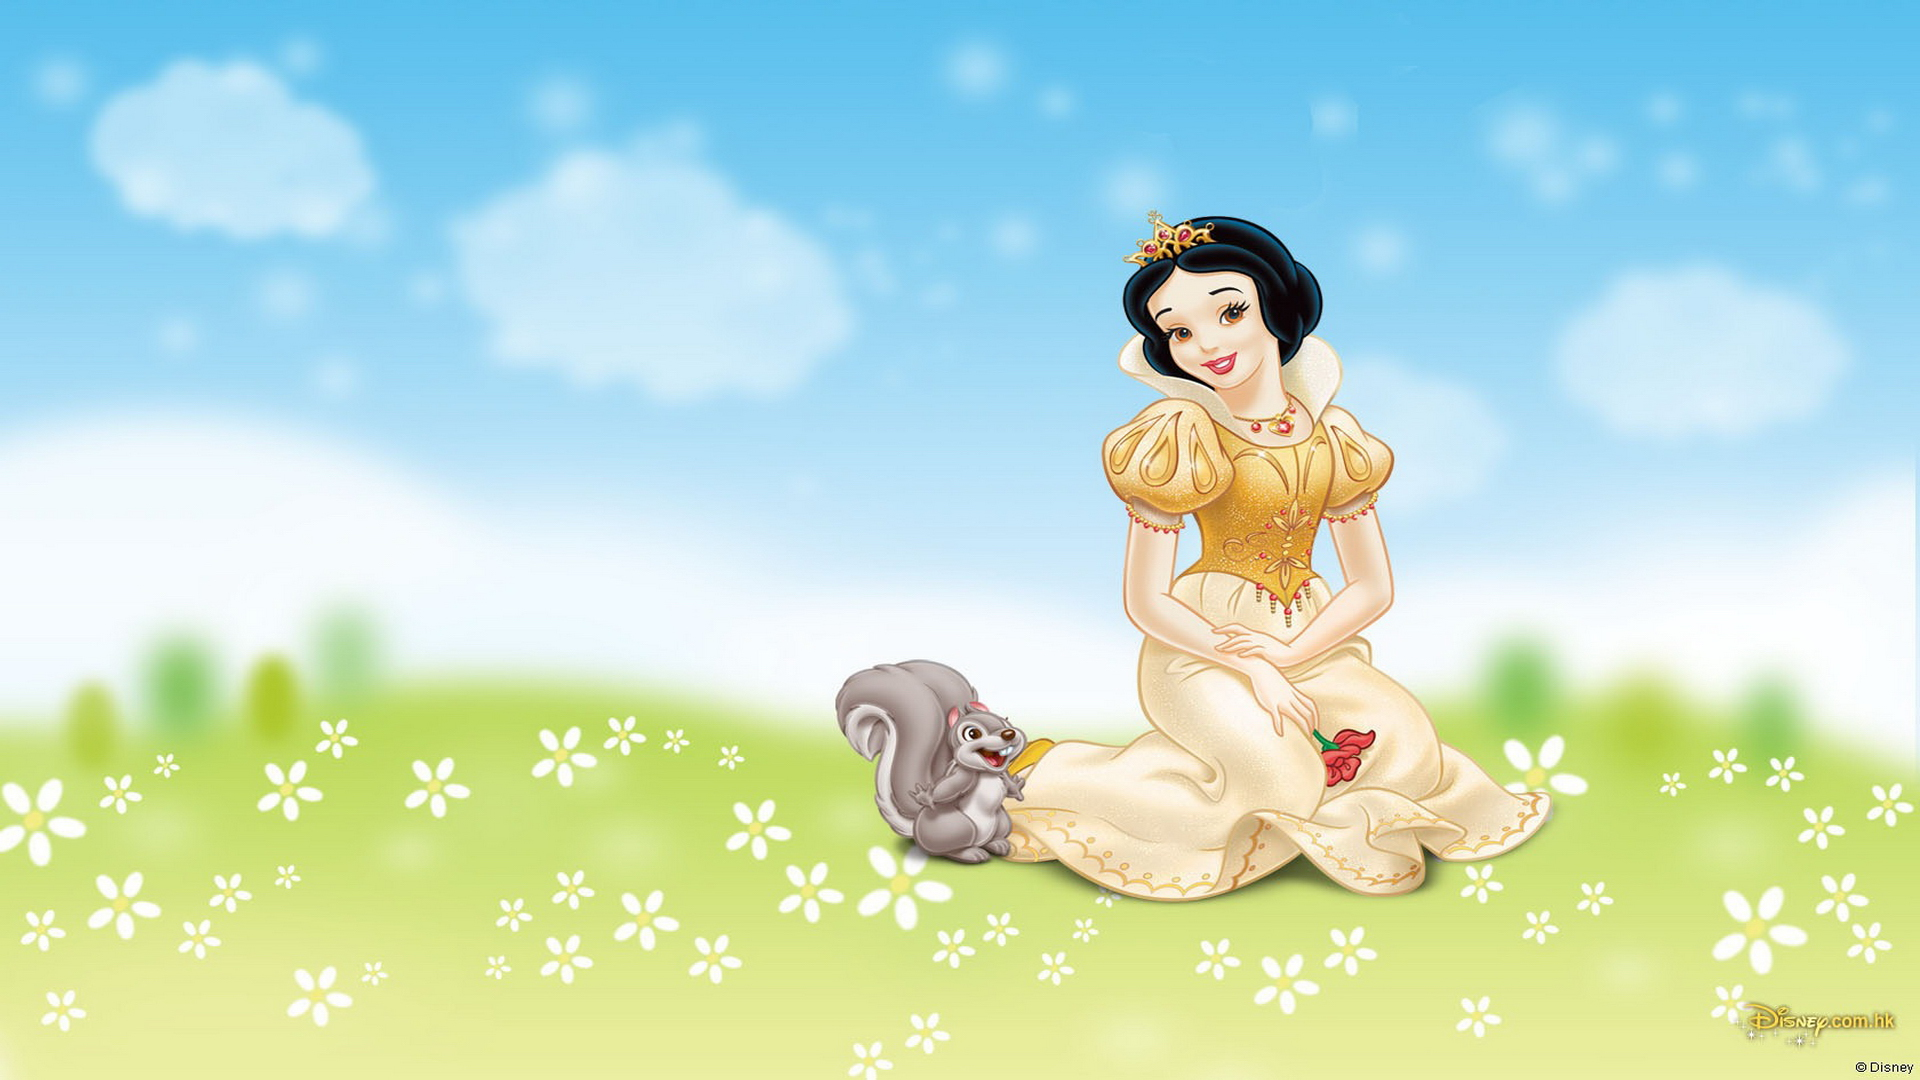 Disney Princess Wallpaper High Res